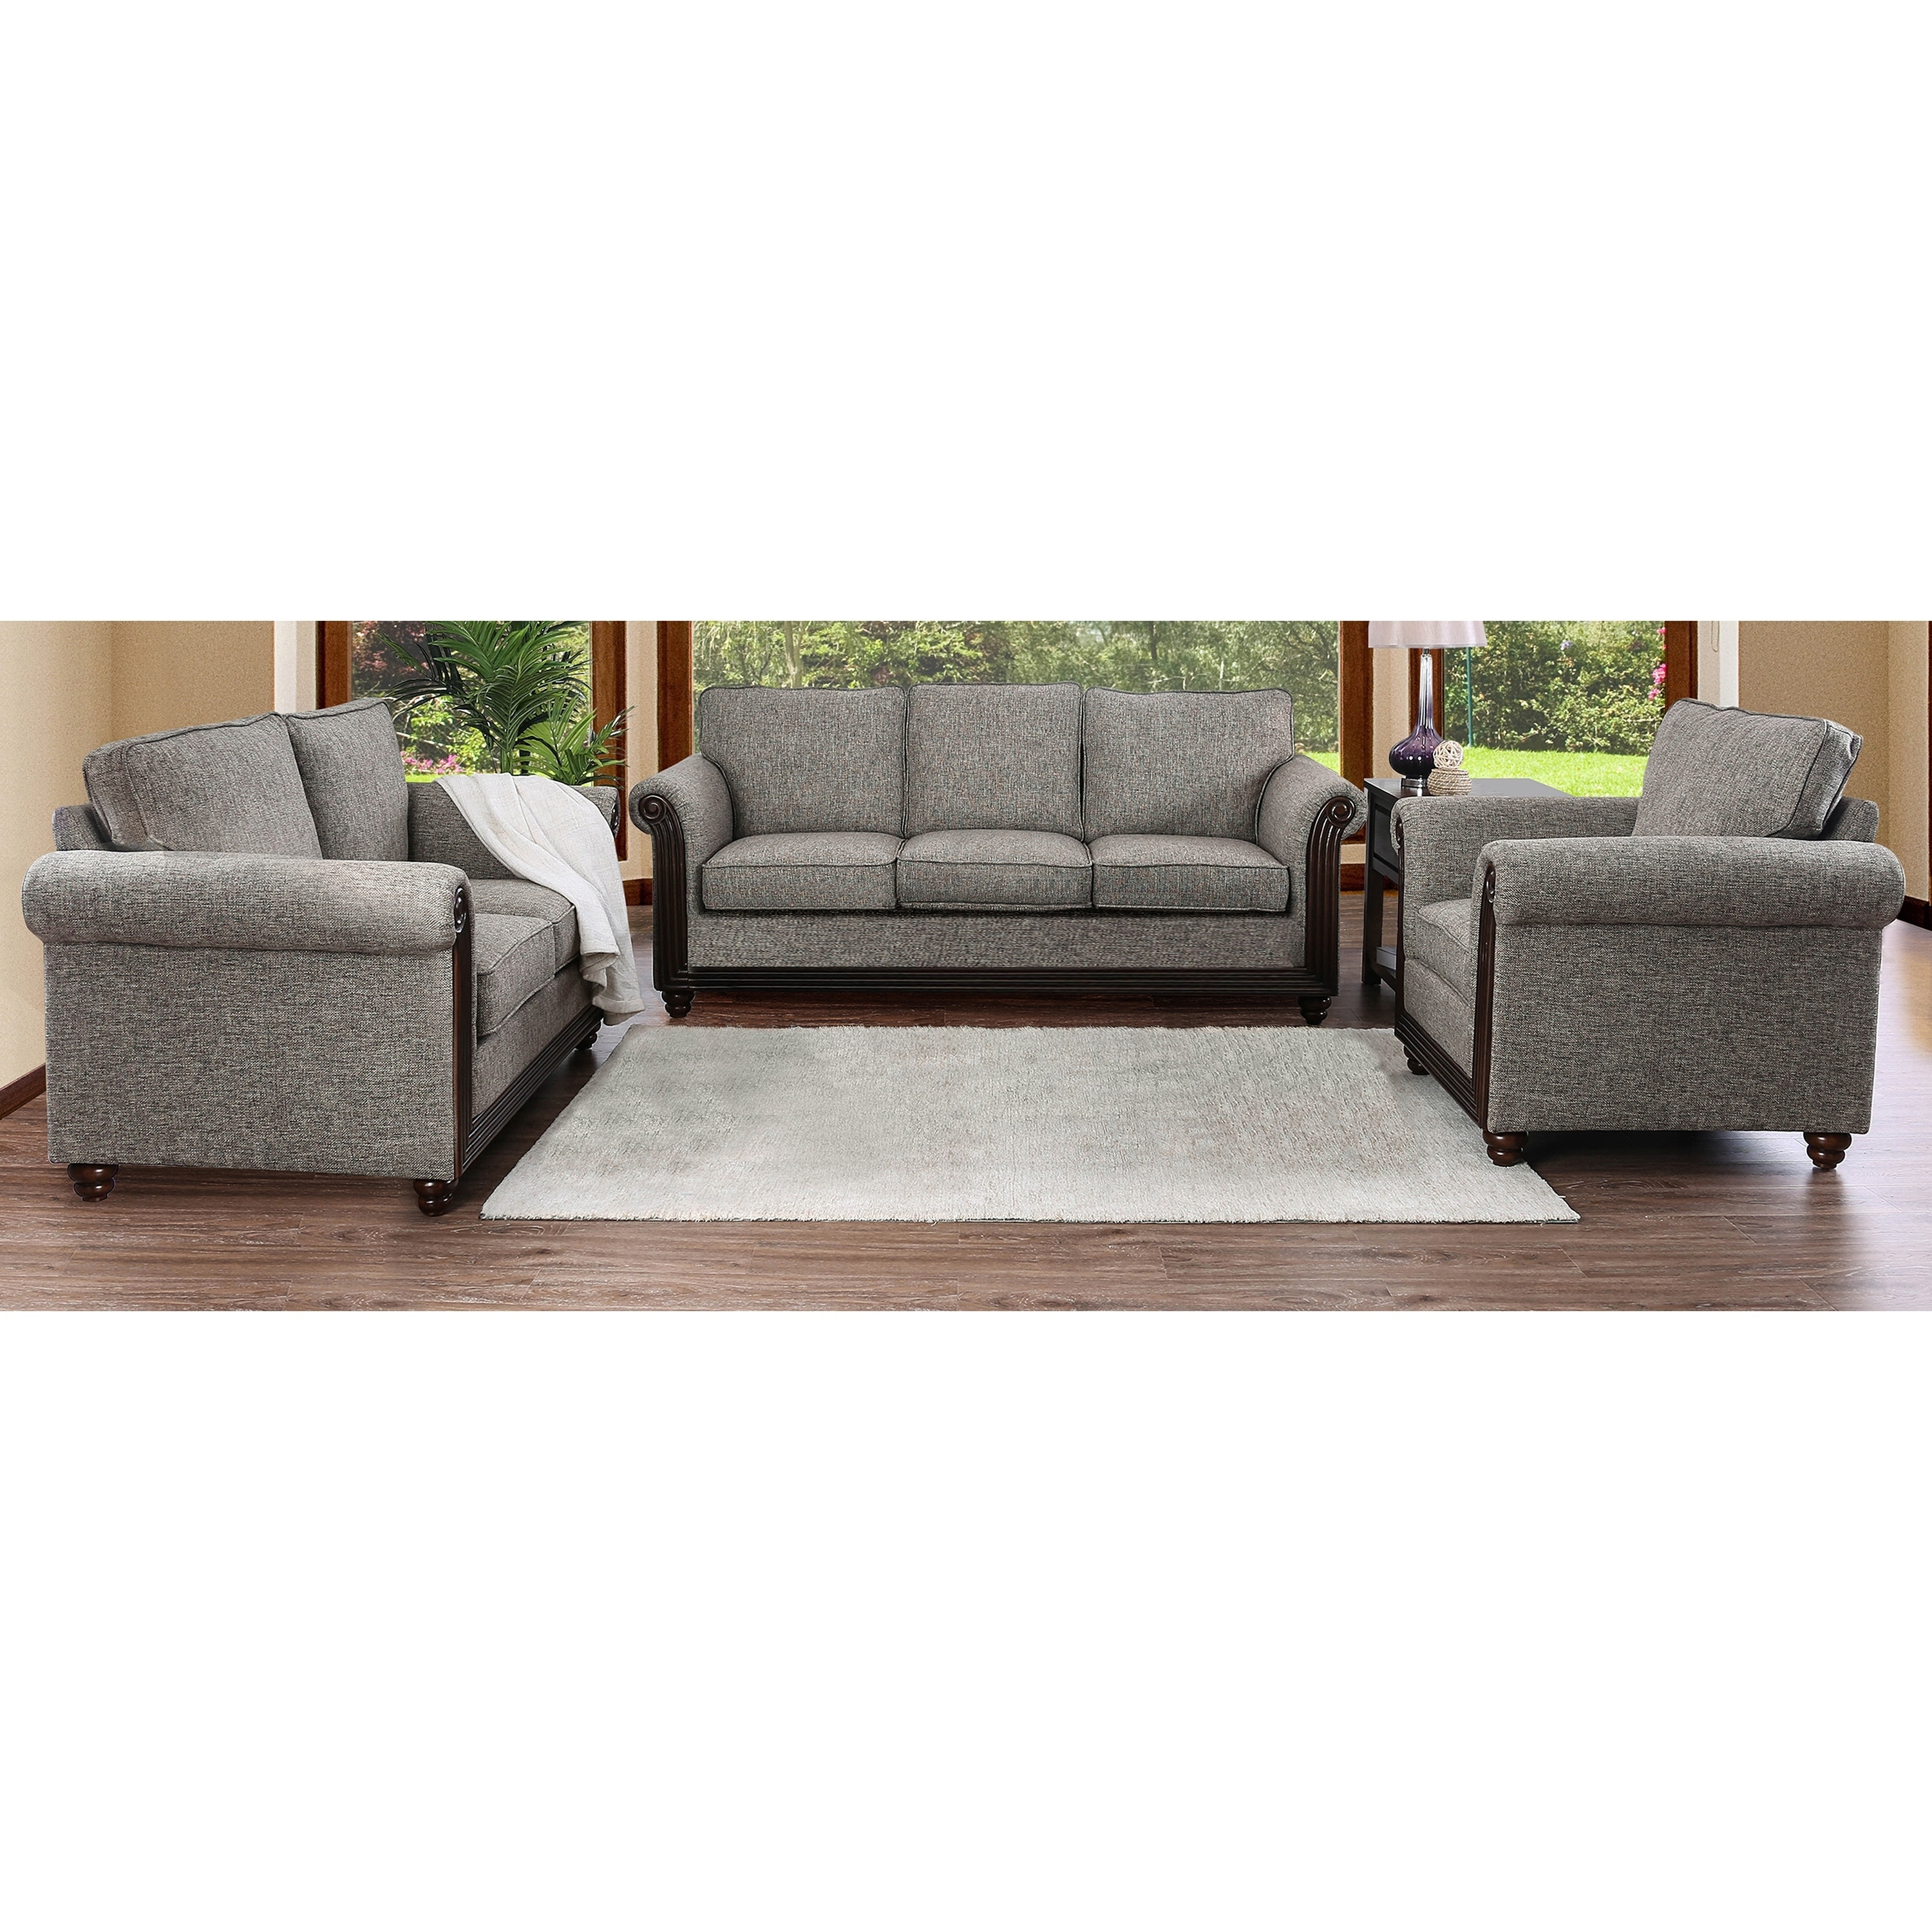 Finley Traditional Grey 3-piece Sofa Set by FOA (Warm Grey)